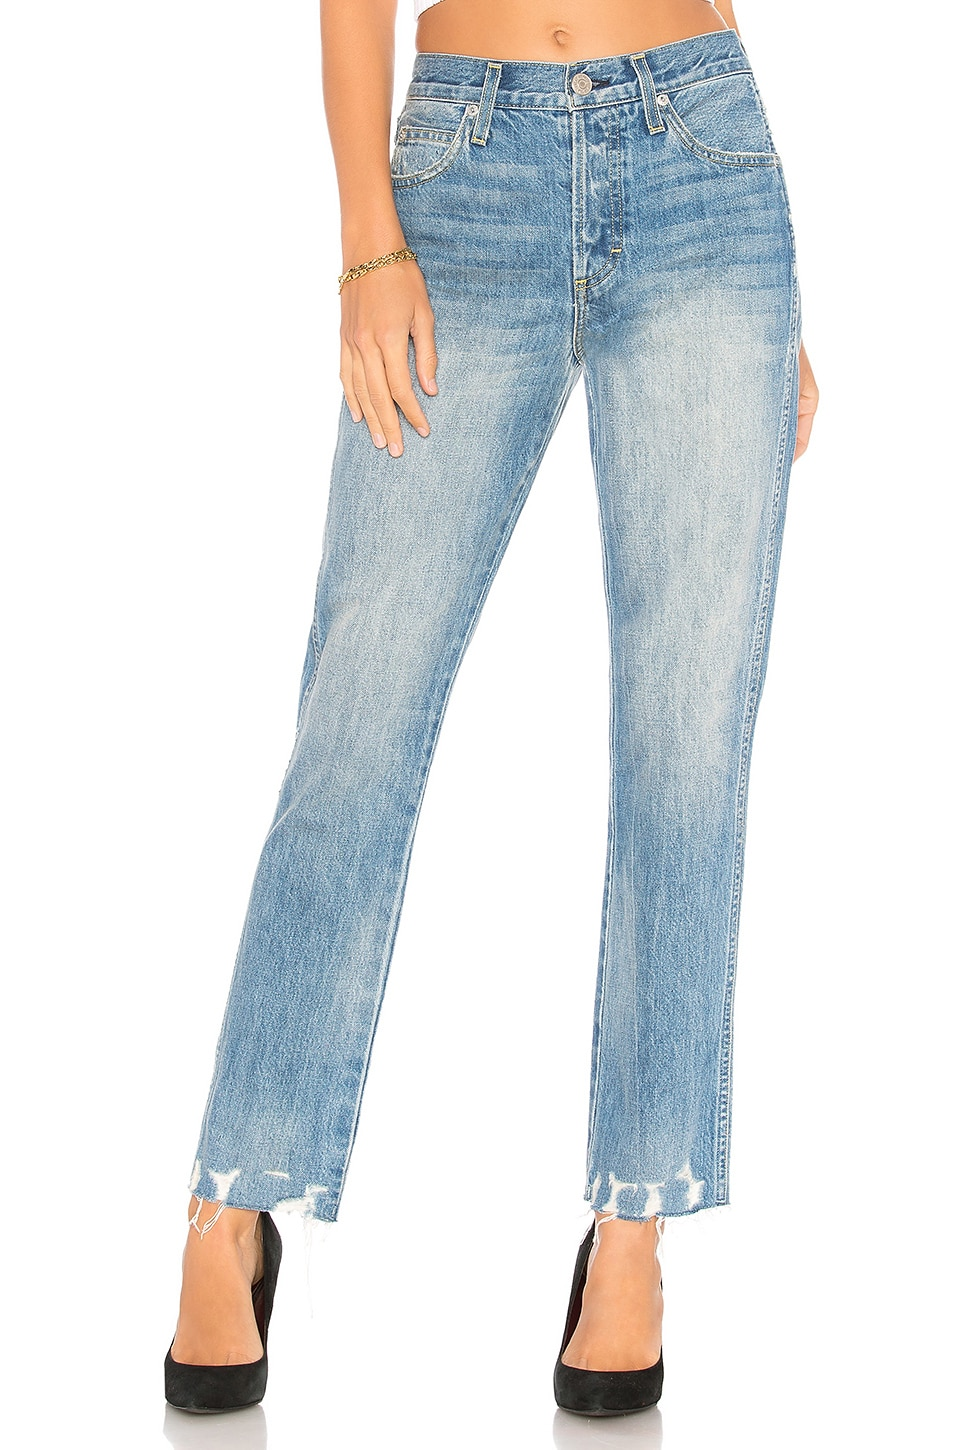 Lover Slim Fit Jeans in Blue